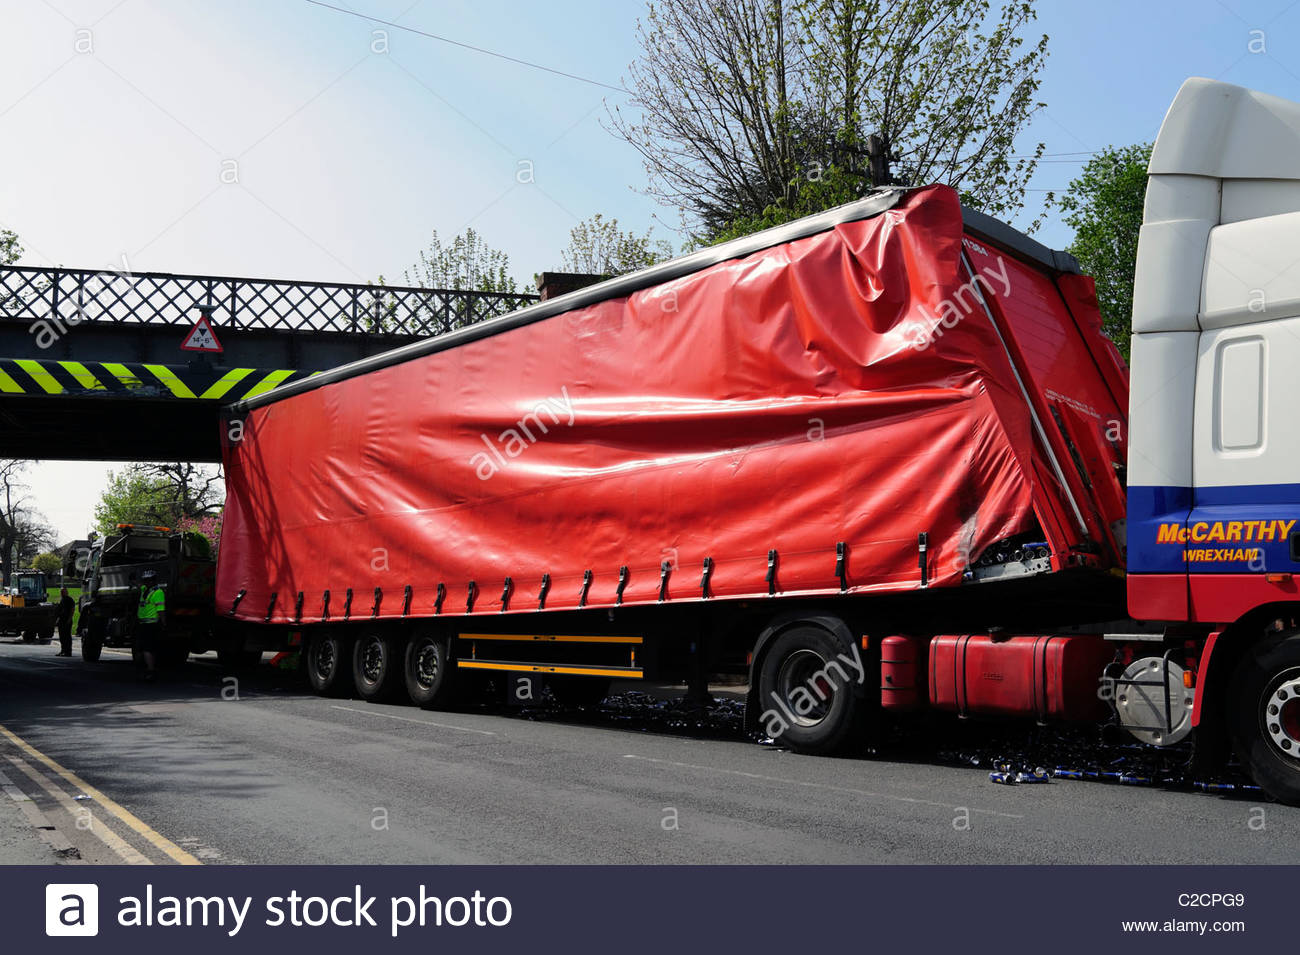 HGV lorry crash in to a low bridge shedding its load from the trailer, Hereford, UK. Truck crashed into low bridge. - Stock Image